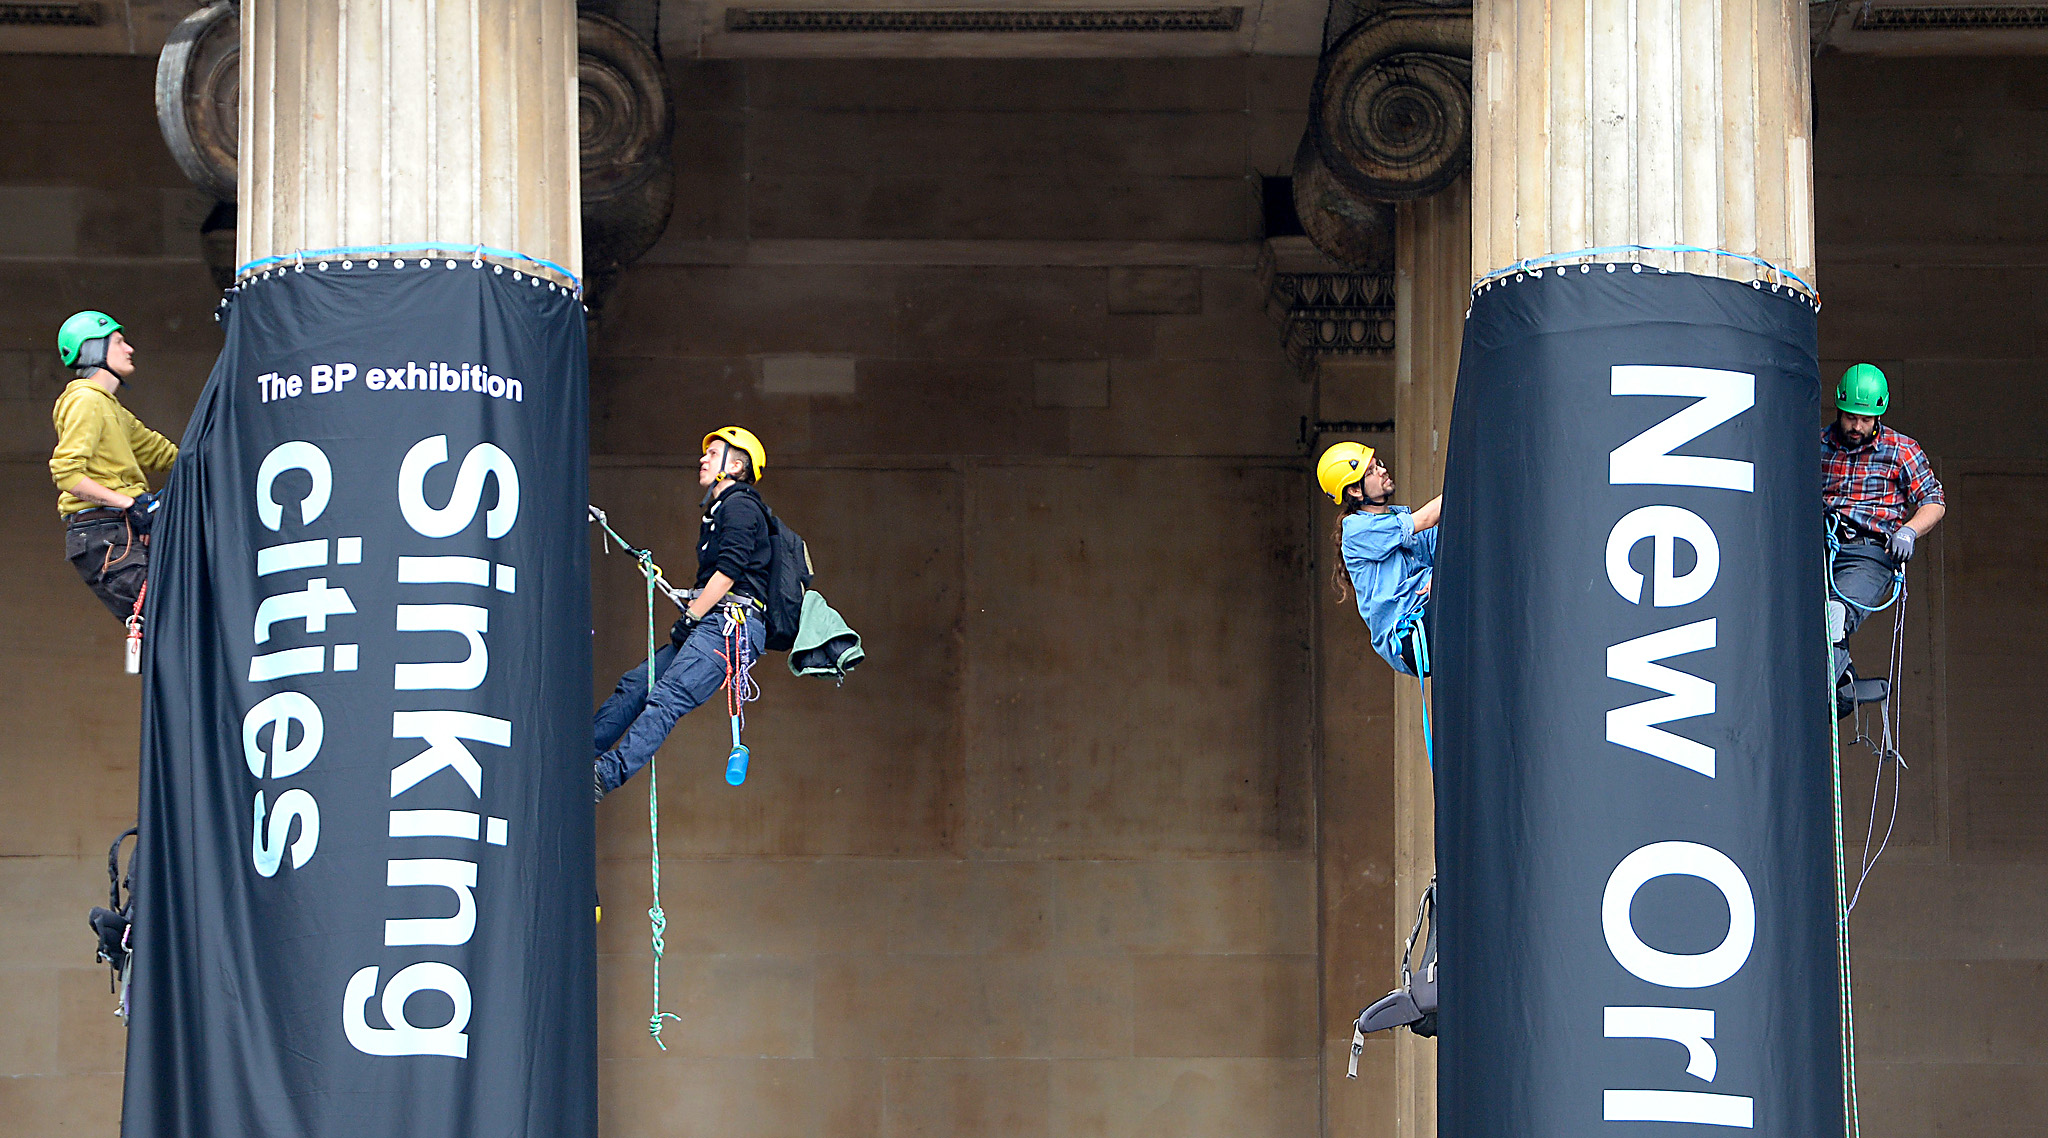 Greenpeace protesters climb the British Museum in London, in protest against BP's sponsorship of the museum's Sunken Cities exhibition. PRESS ASSOCIATION Photo. Picture date: Thursday May 19, 2016. See PA story ENVIRONMENT Protest. Photo credit should read: Anthony Devlin/PA Wire